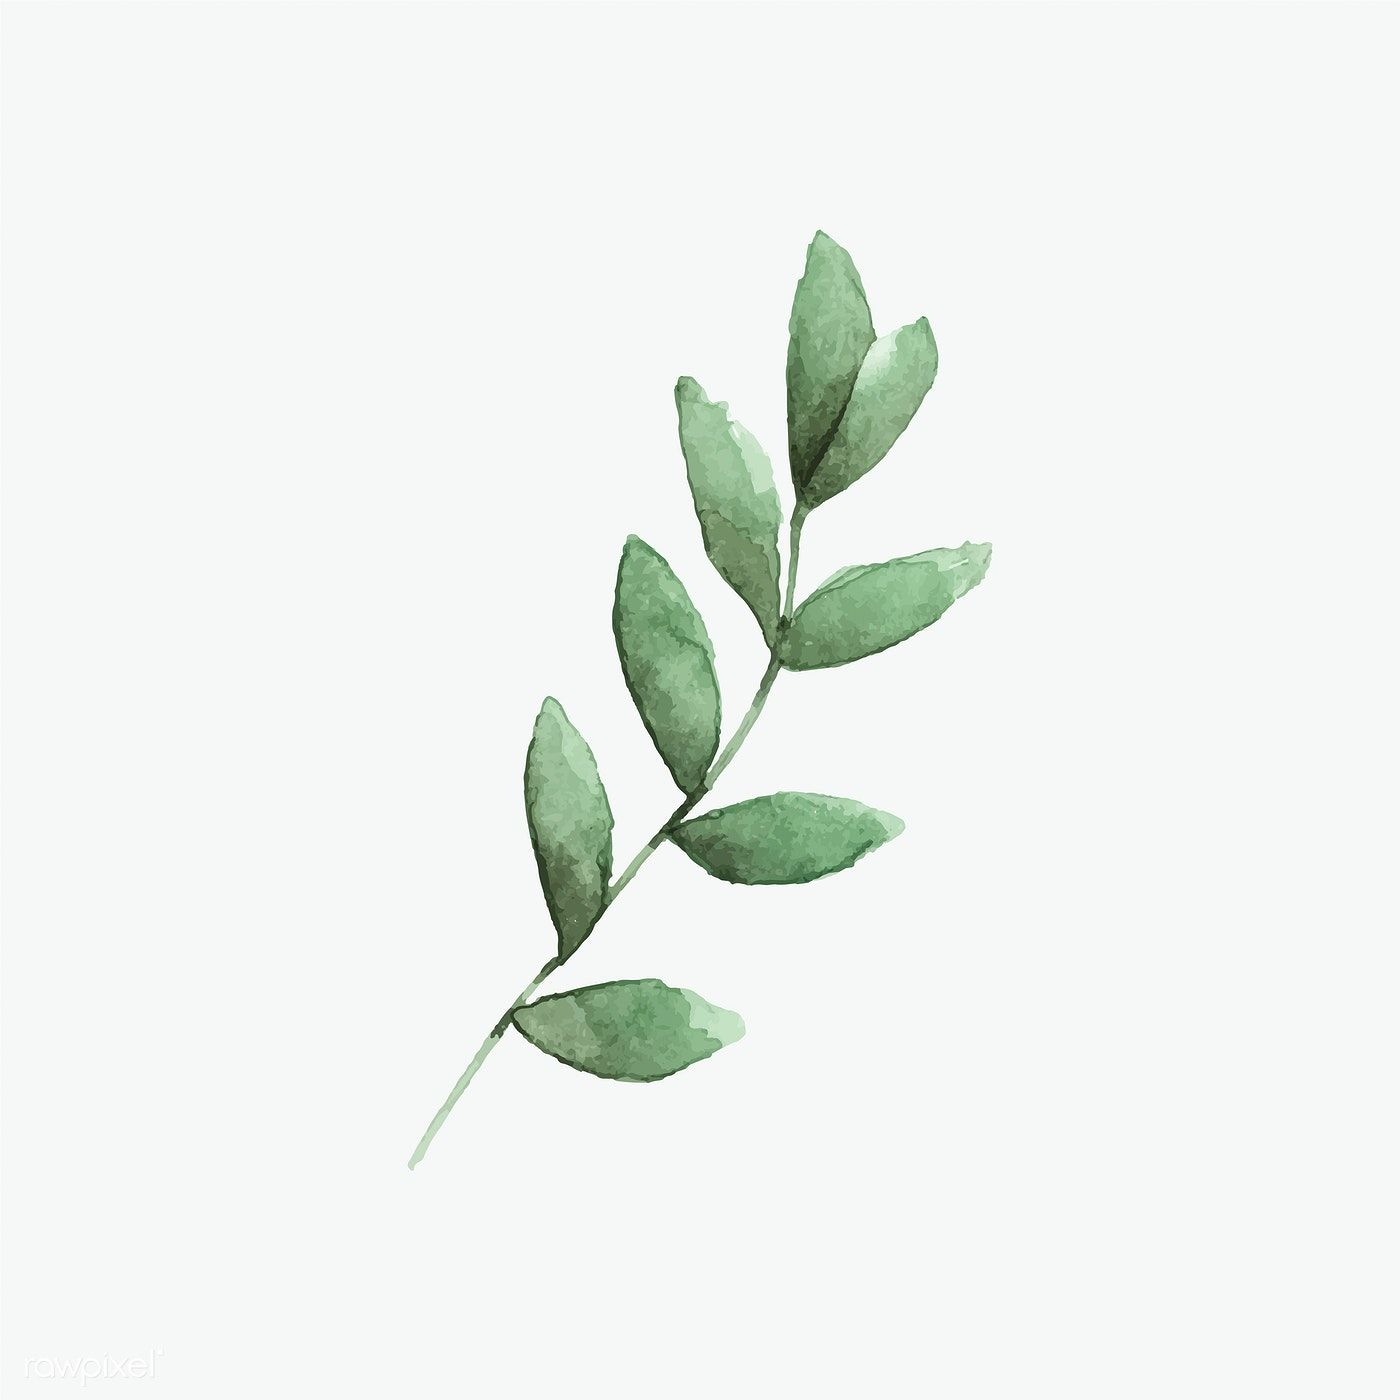 Seeded Eucalyptus Branch Painted In Watercolor Vector Free Image